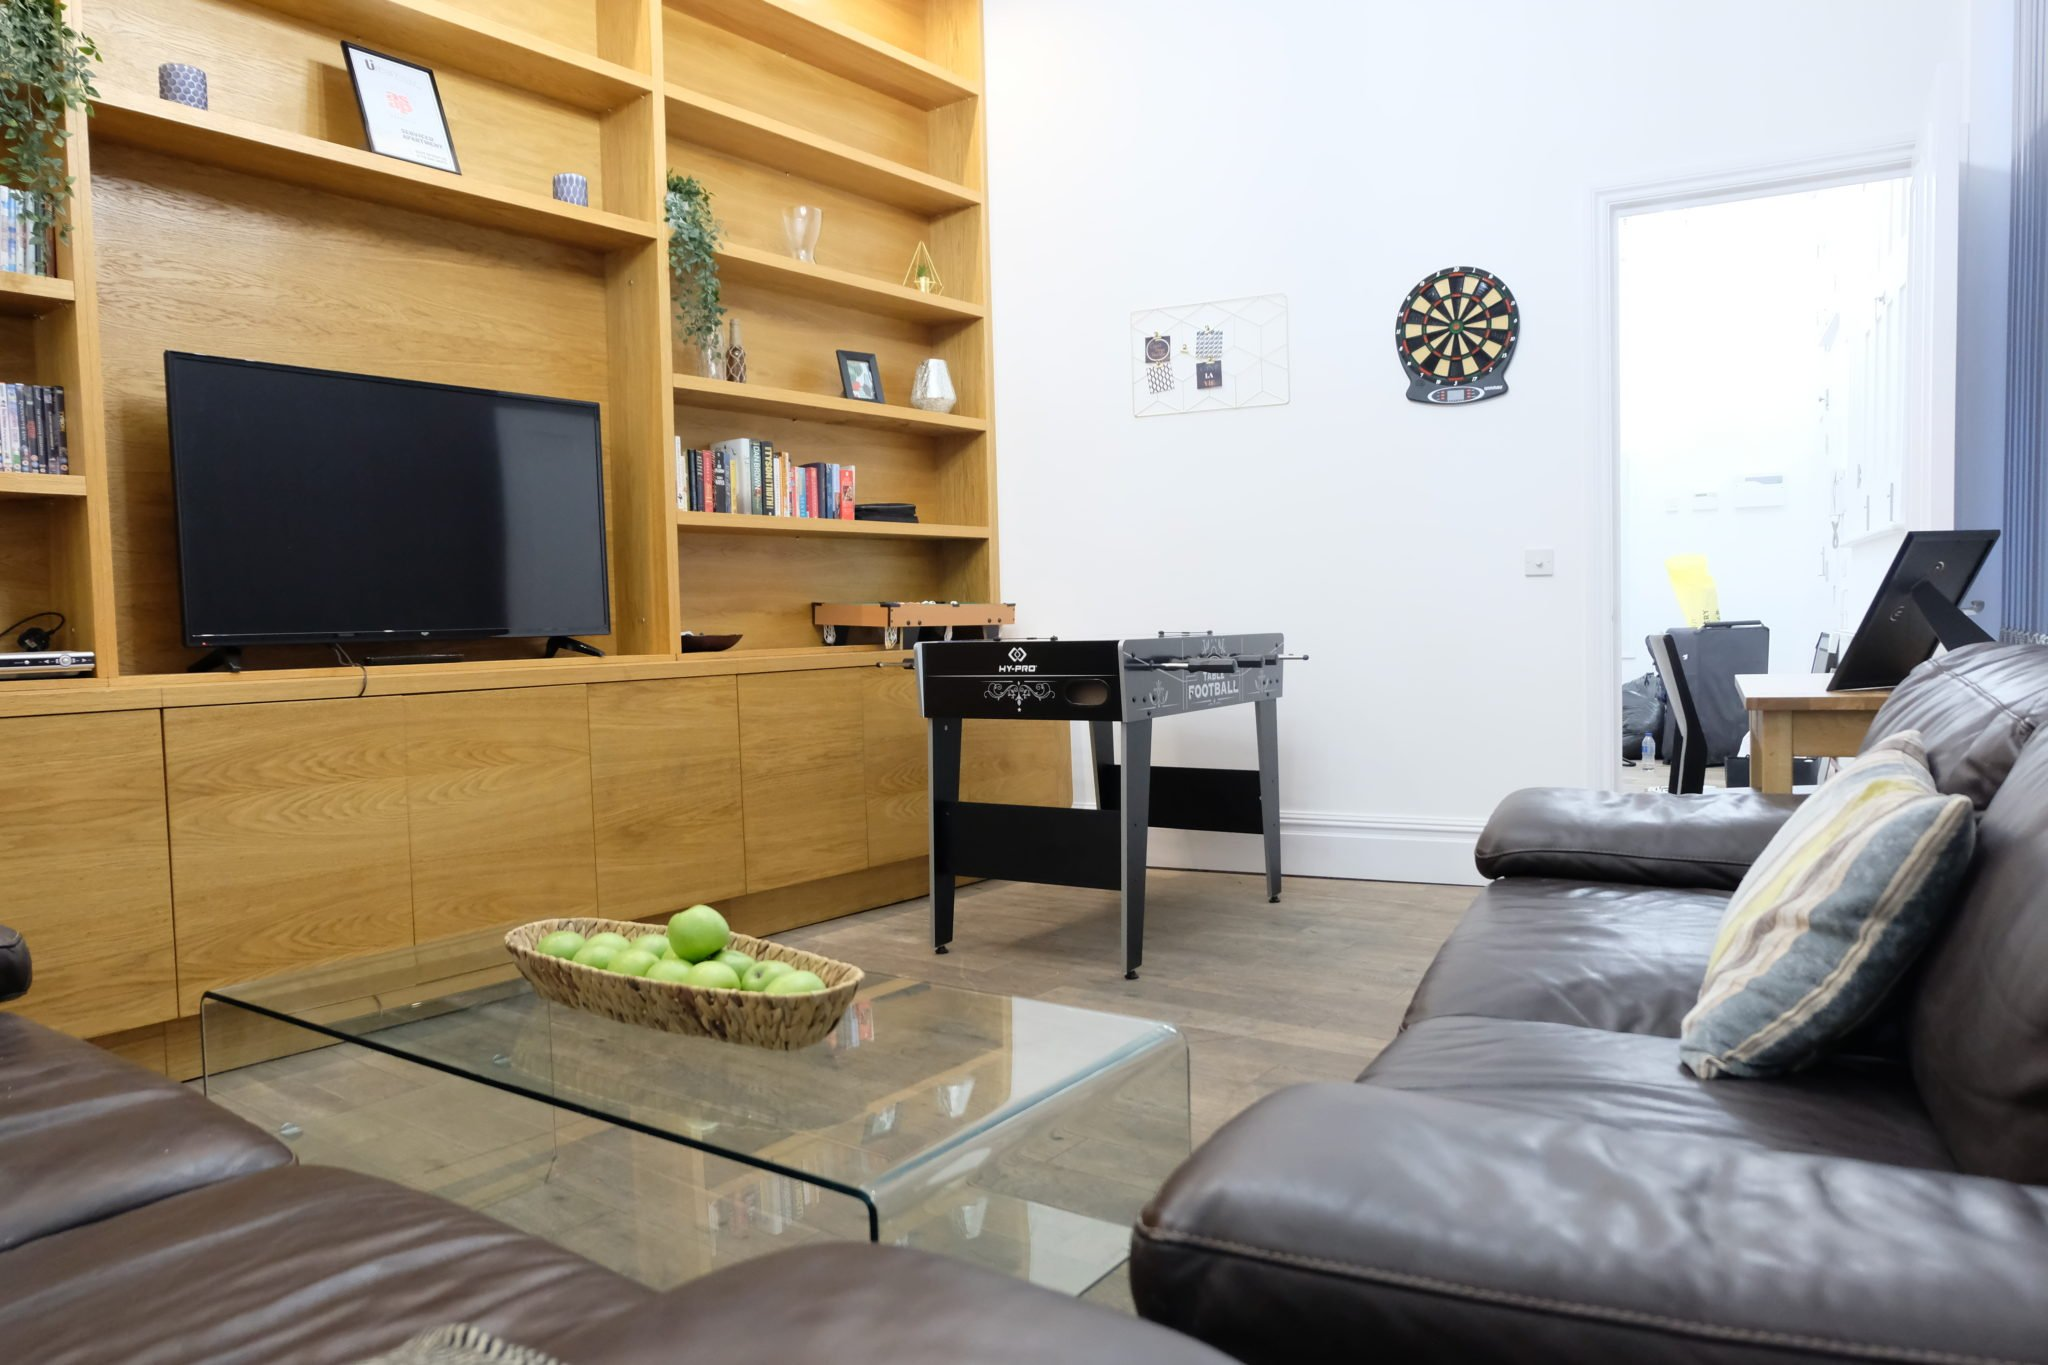 Luxury Townhousescentral London Oxford Street Mansions Short Let Serviced Accommodation Tottenham Court Road Urban Stay 30